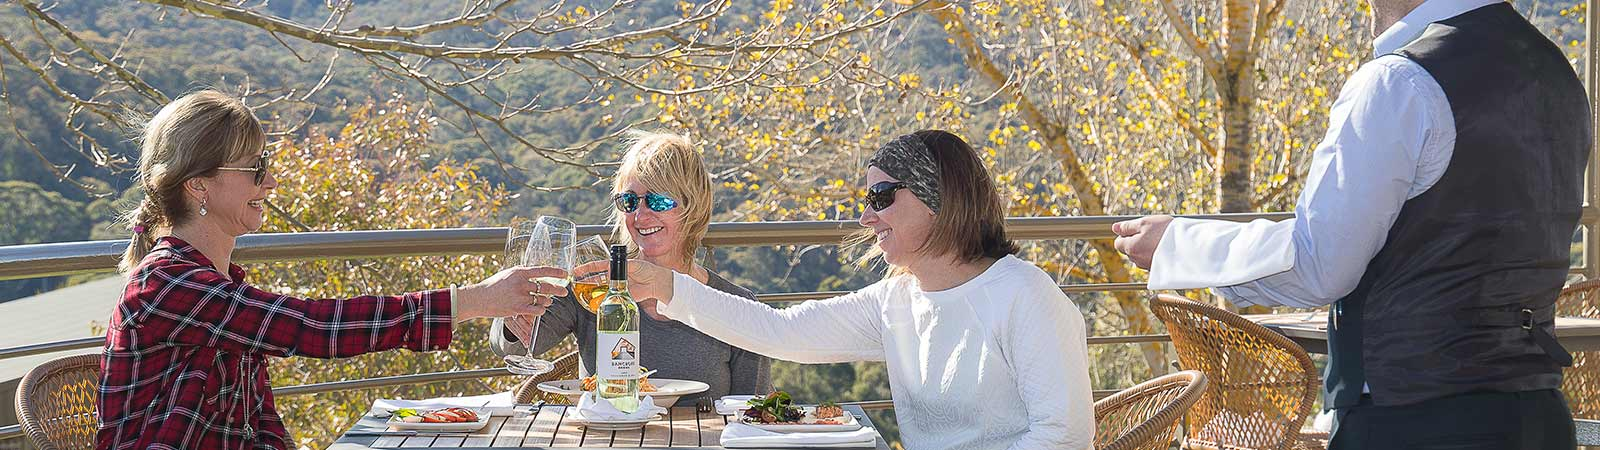 Enjoy a wine at The Sebel Pinnacle Valley Resort